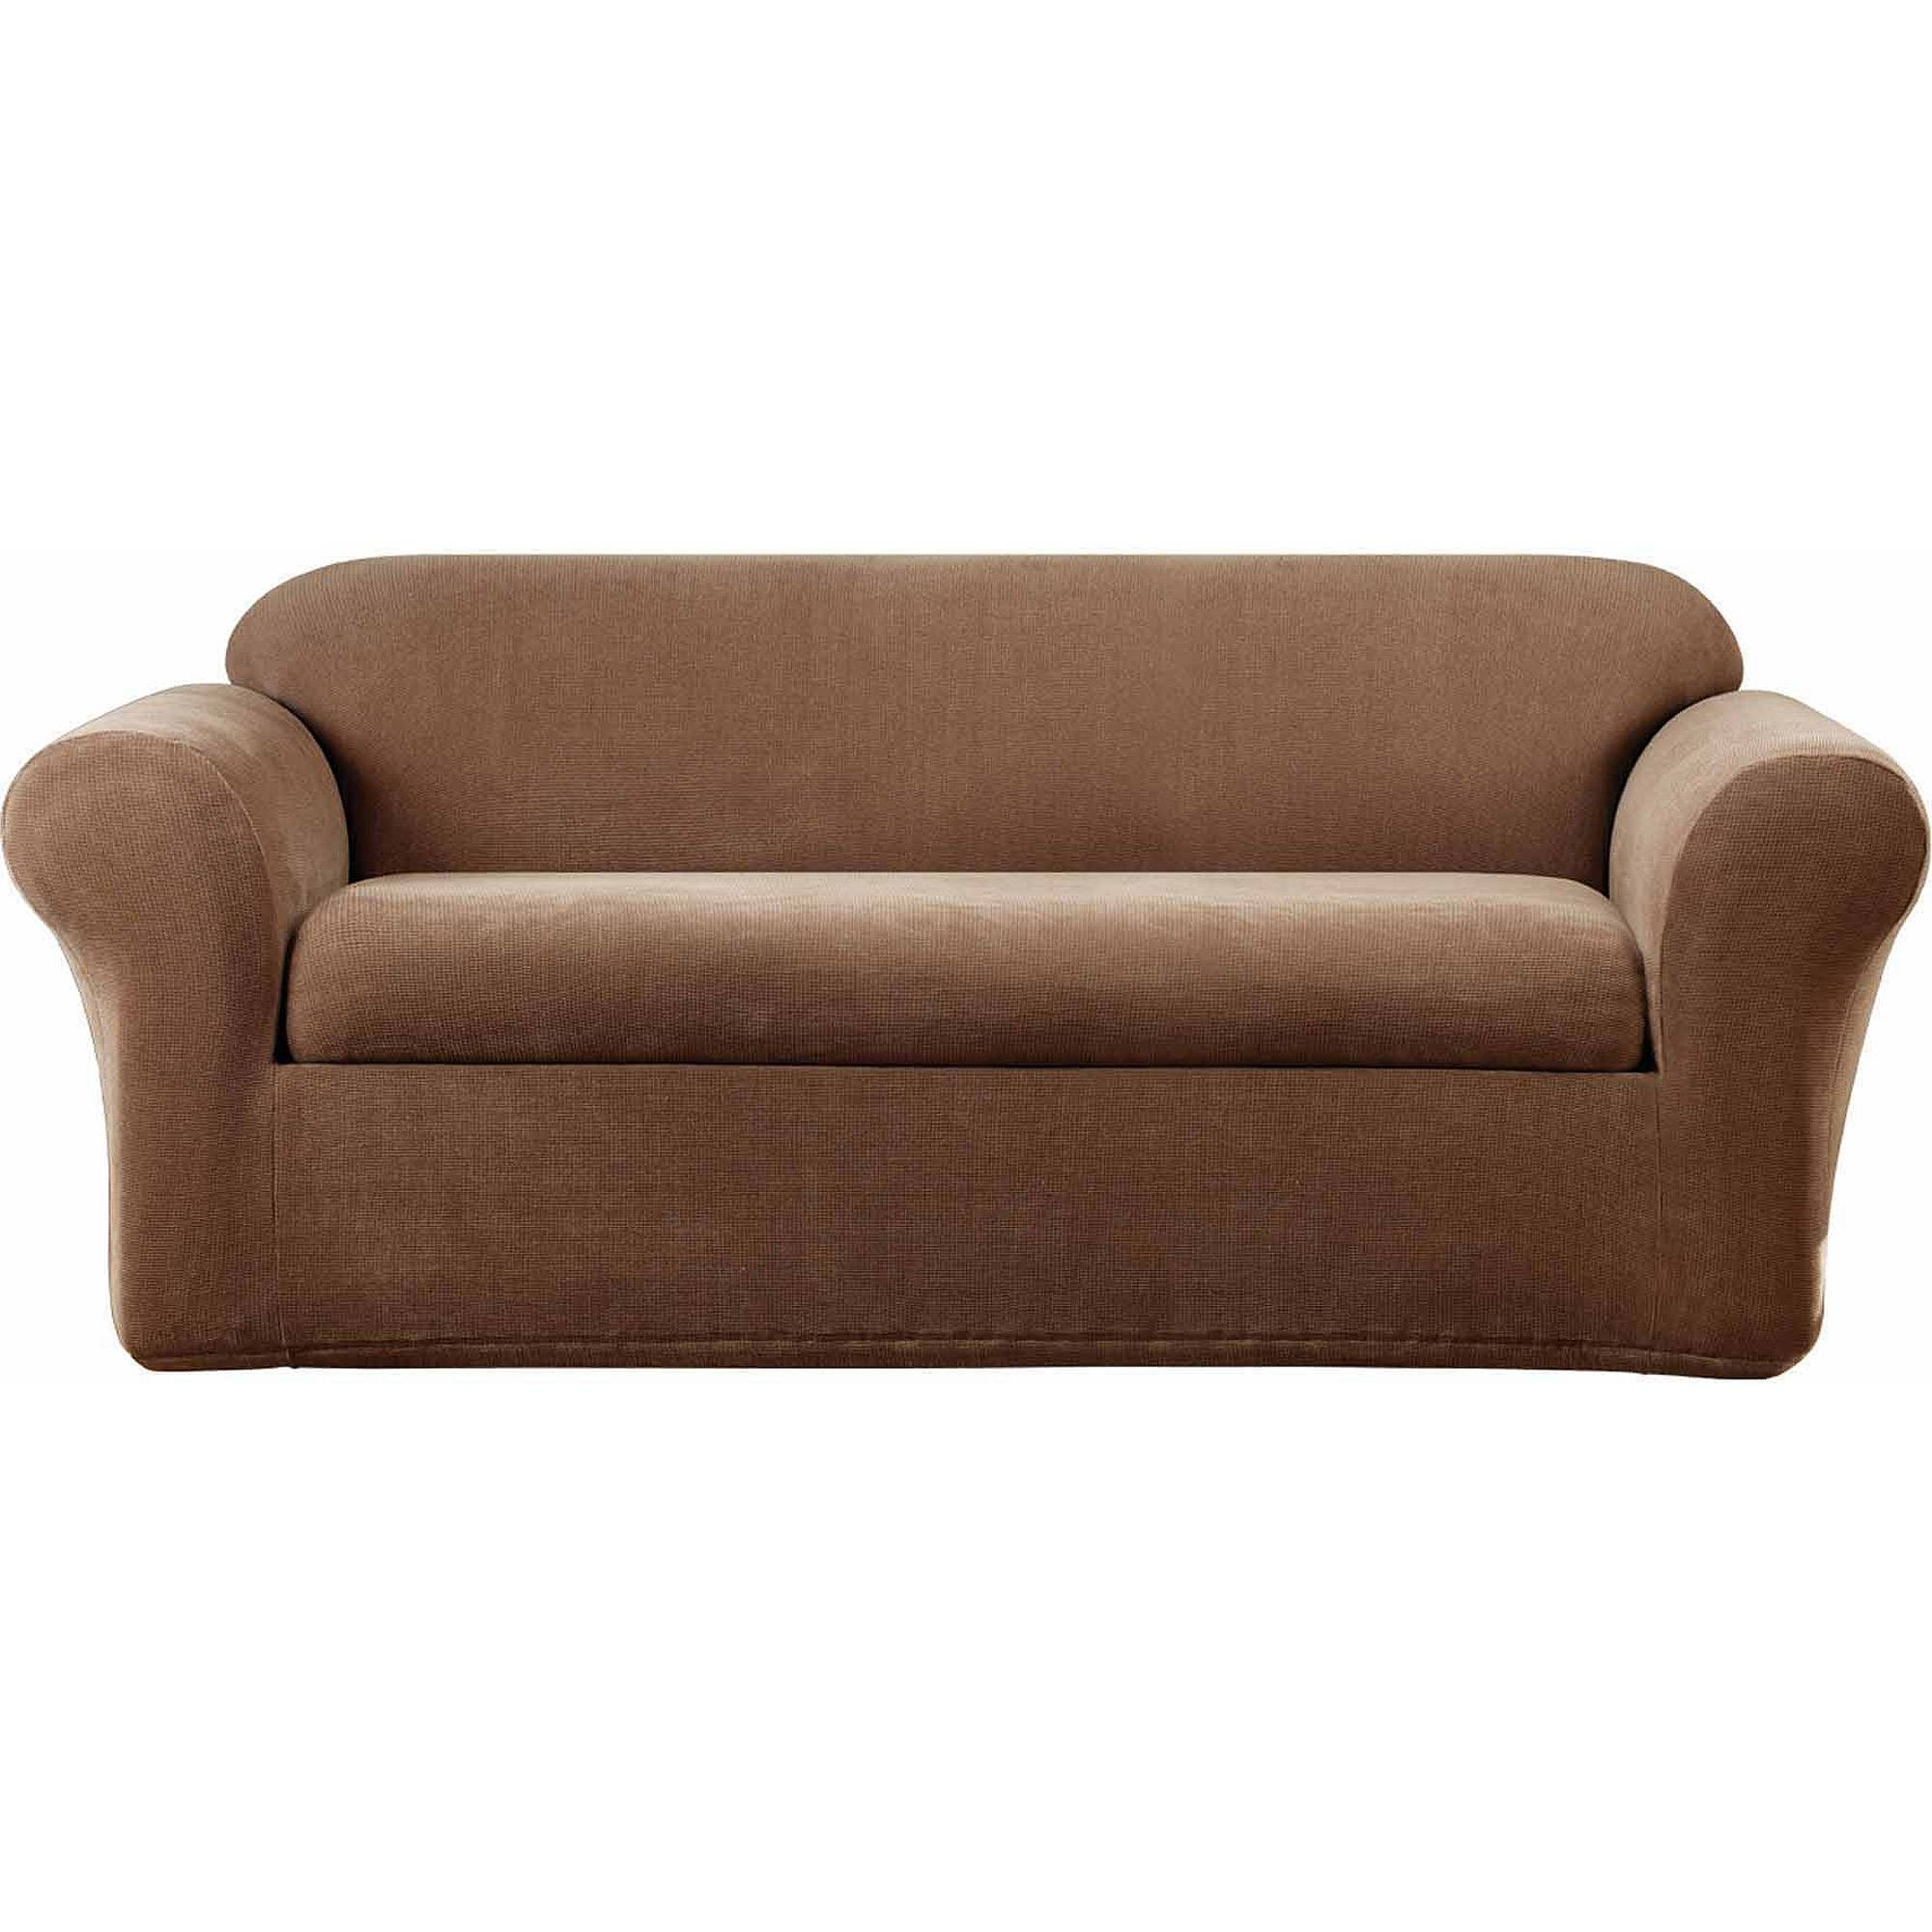 Sure Fit Stretch Metro Separate Seat Sofa Slipcover - Walmart within Loveseat Slipcovers 3 Pieces (Image 10 of 15)